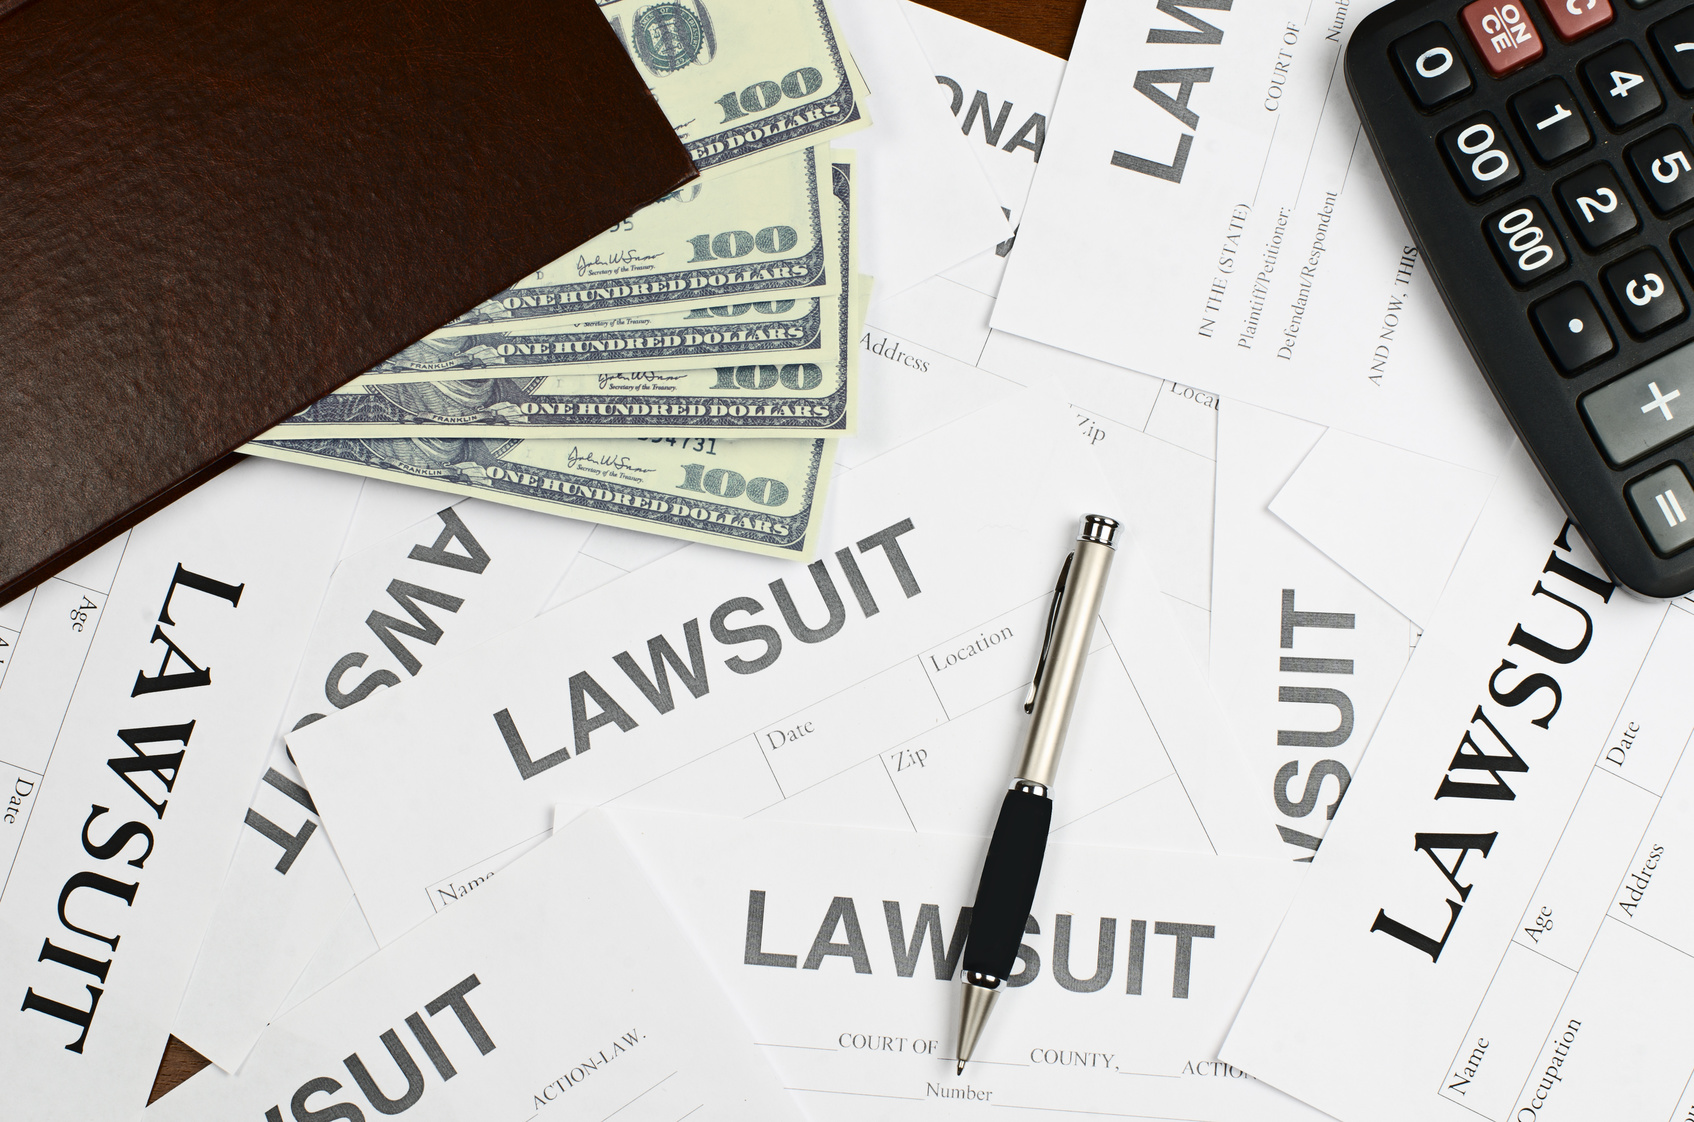 Most common lawsuits business owners should know about